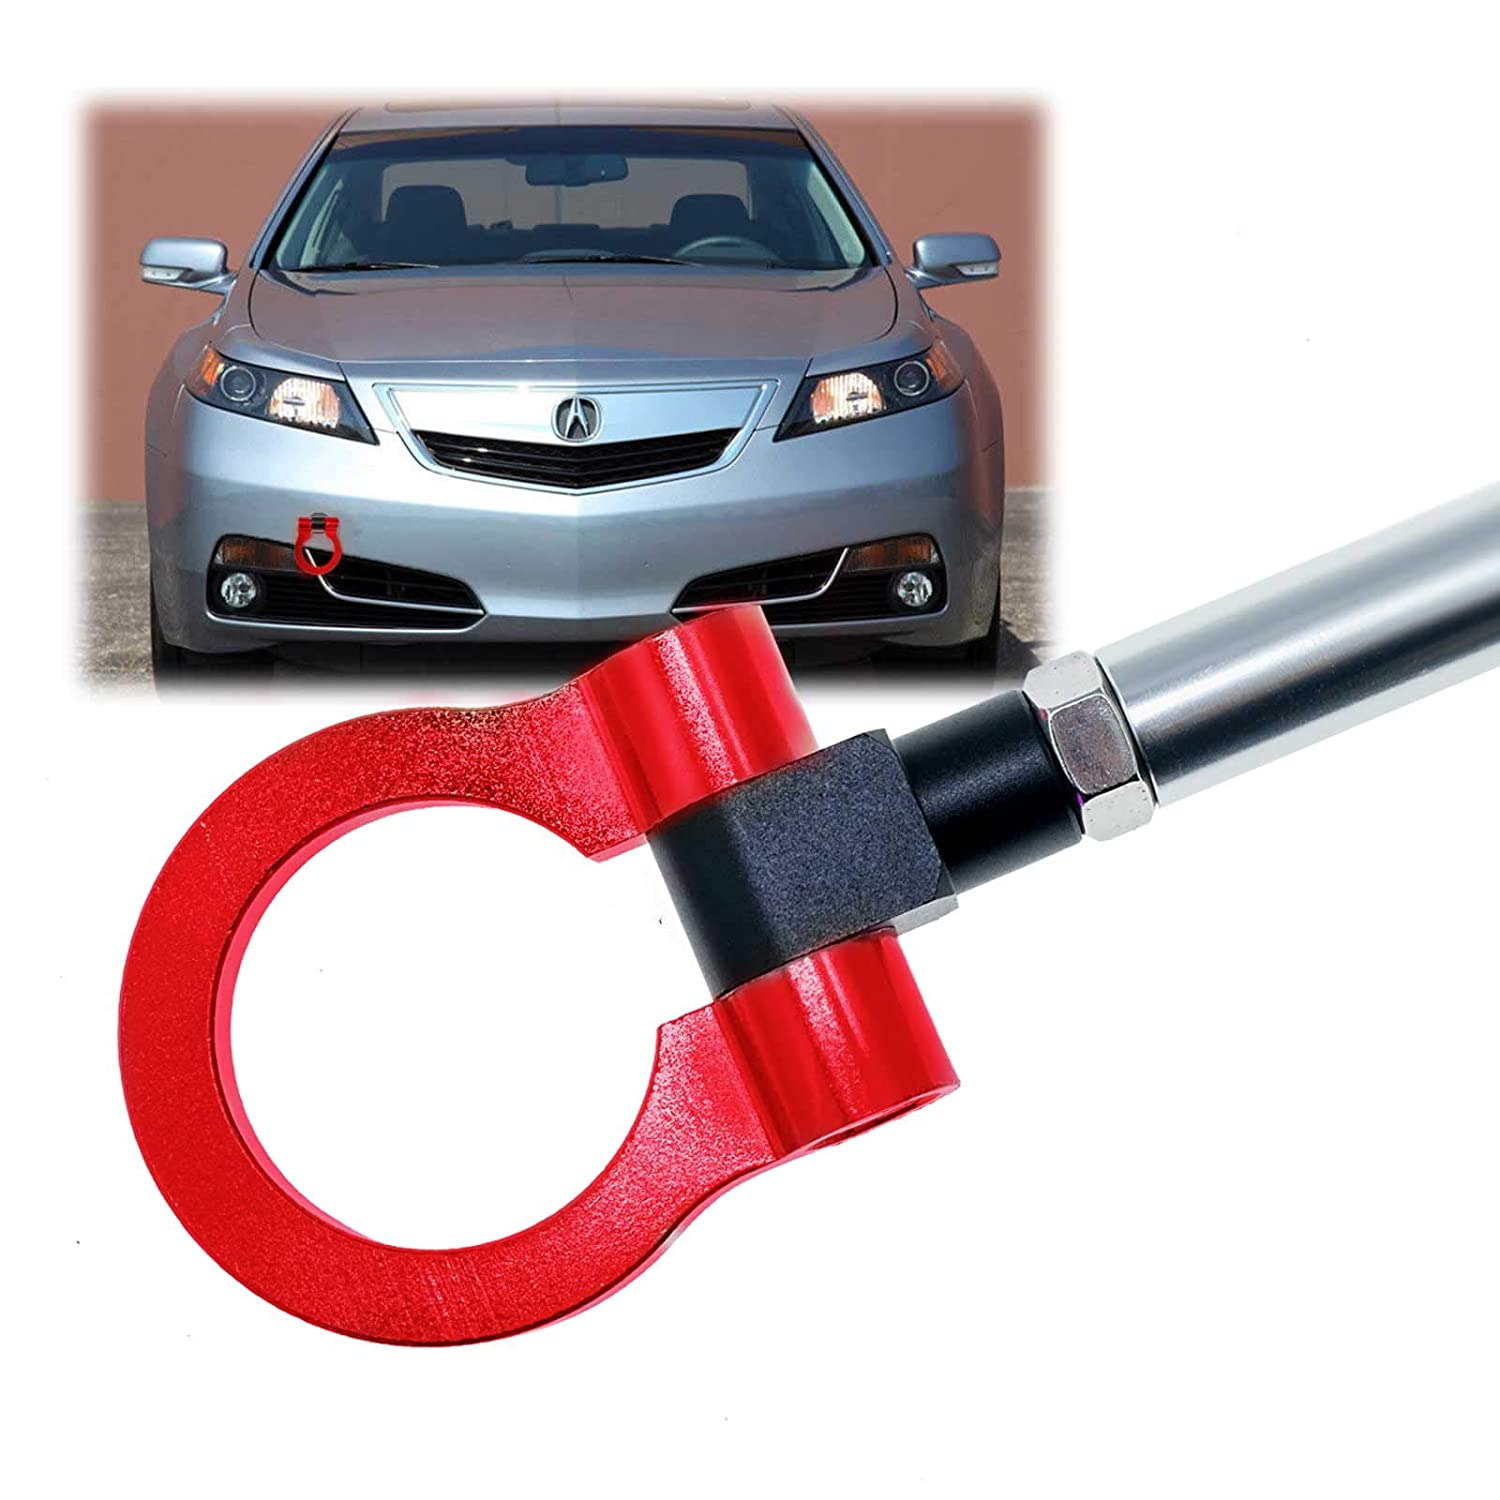 Xotic Tech JDM Track Racing CNC Aluminum Alloy Tow Hook for Honda S2000 AP1 AP2 Fit Acura TL, Red Xotic Tech Direct